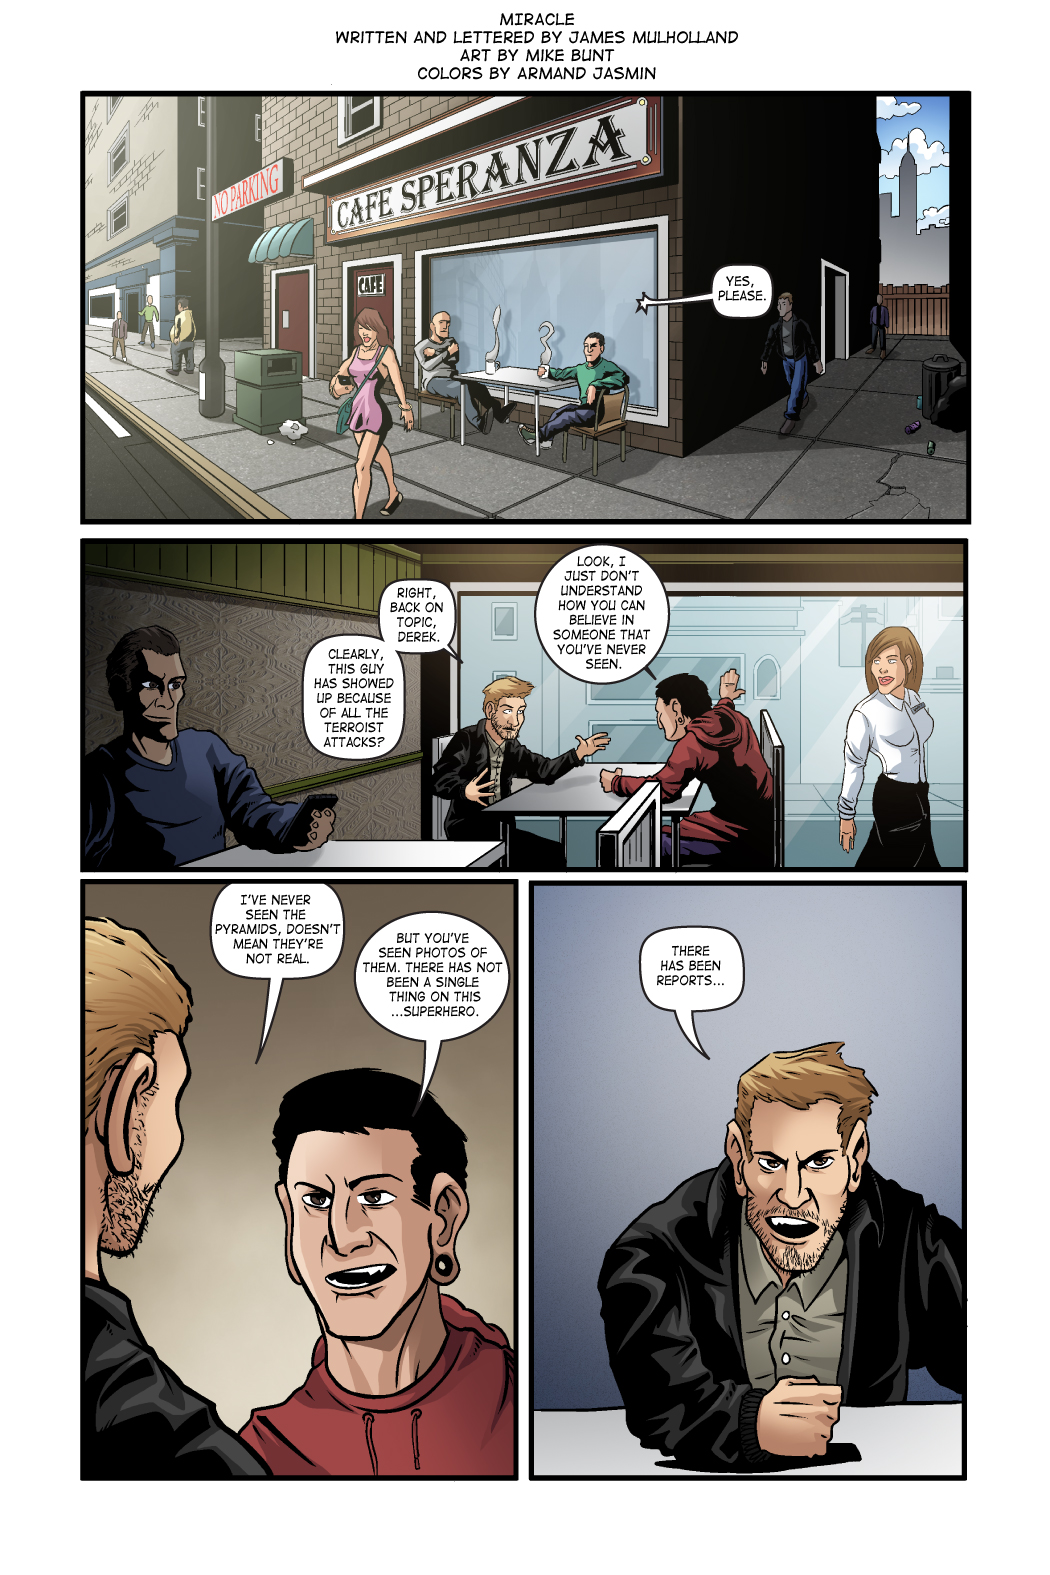 MIRACLE (Page 1)